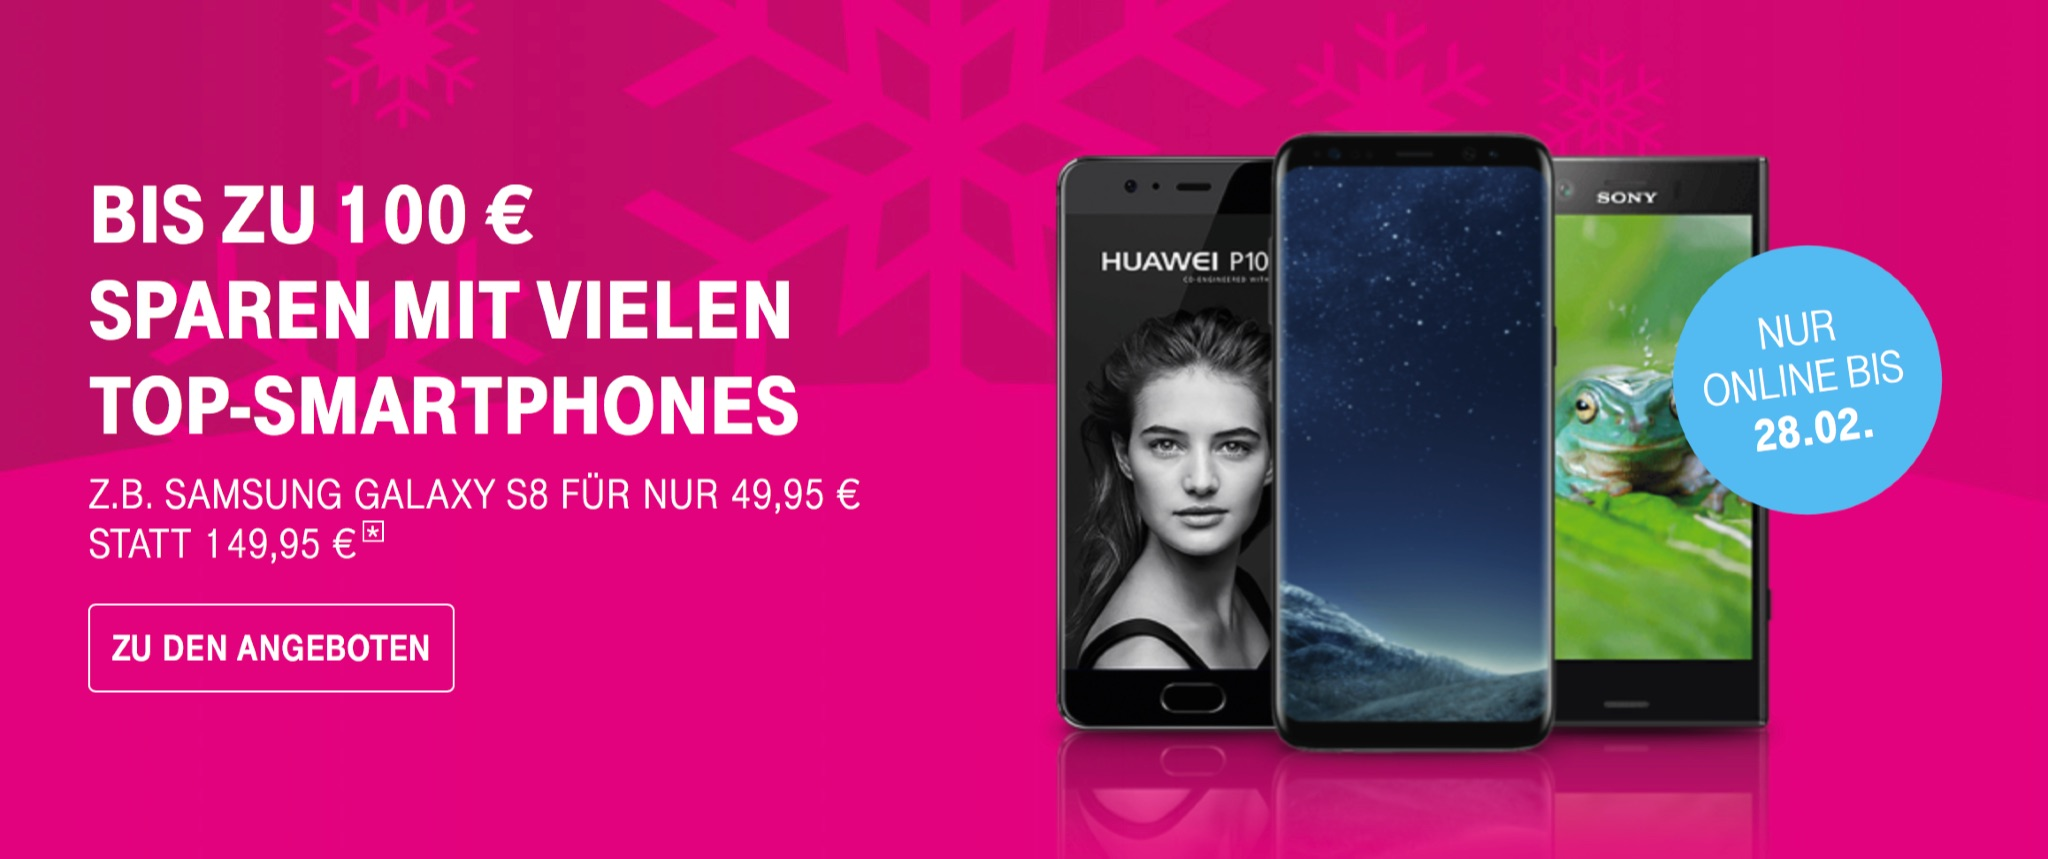 telekom aktion bis zu 100 euro rabatt auf iphone 8 iphone 7 samsung galaxy s8 huawei mate 10. Black Bedroom Furniture Sets. Home Design Ideas